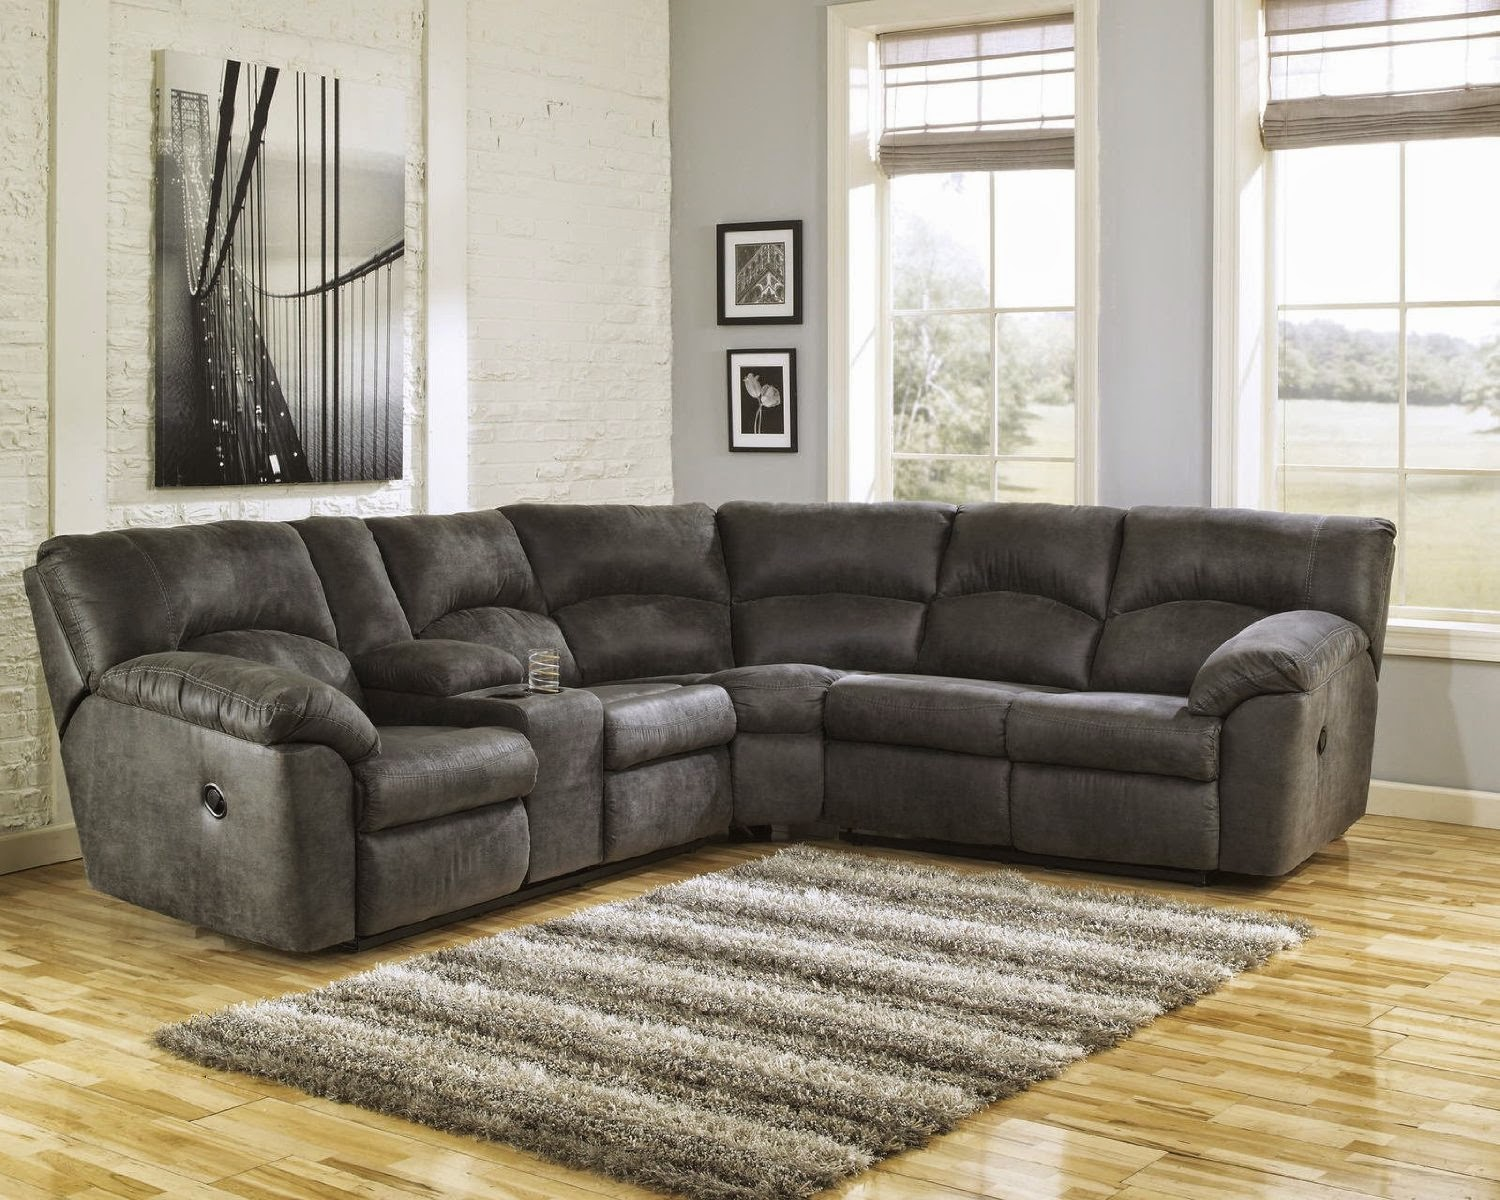 small sofa recliner 2 person dimensions the best reclining reviews sectional sofas